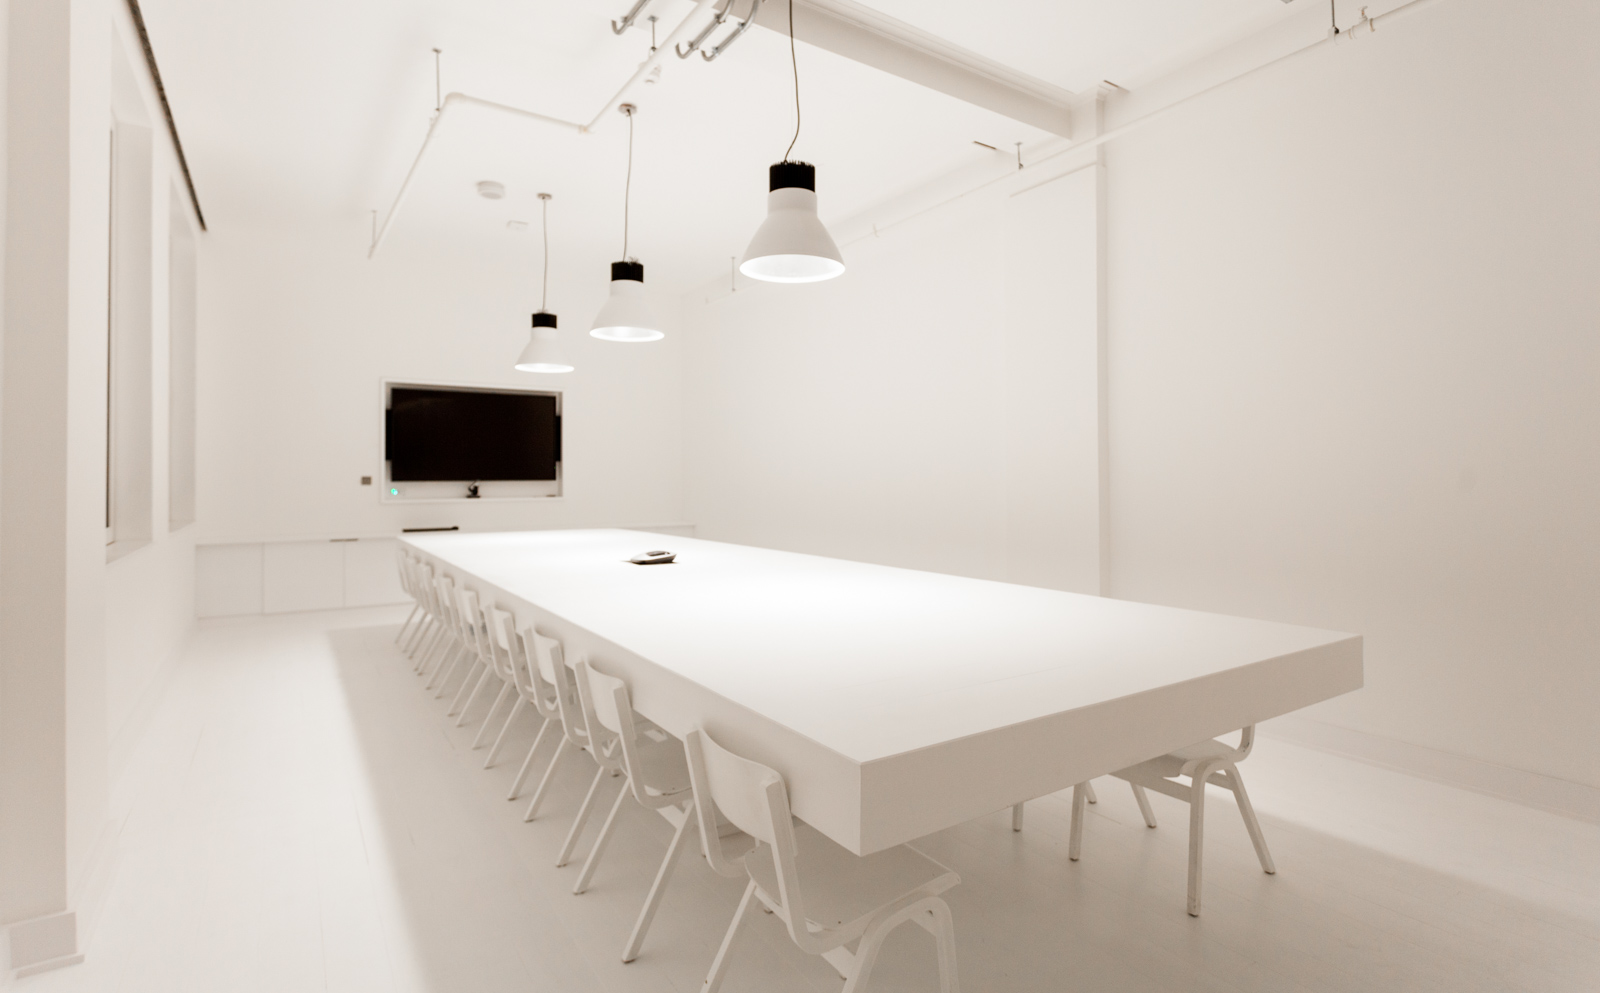 Cupertino Meeting Room At Huckletree Shoreditch For Digital Workshop Venue